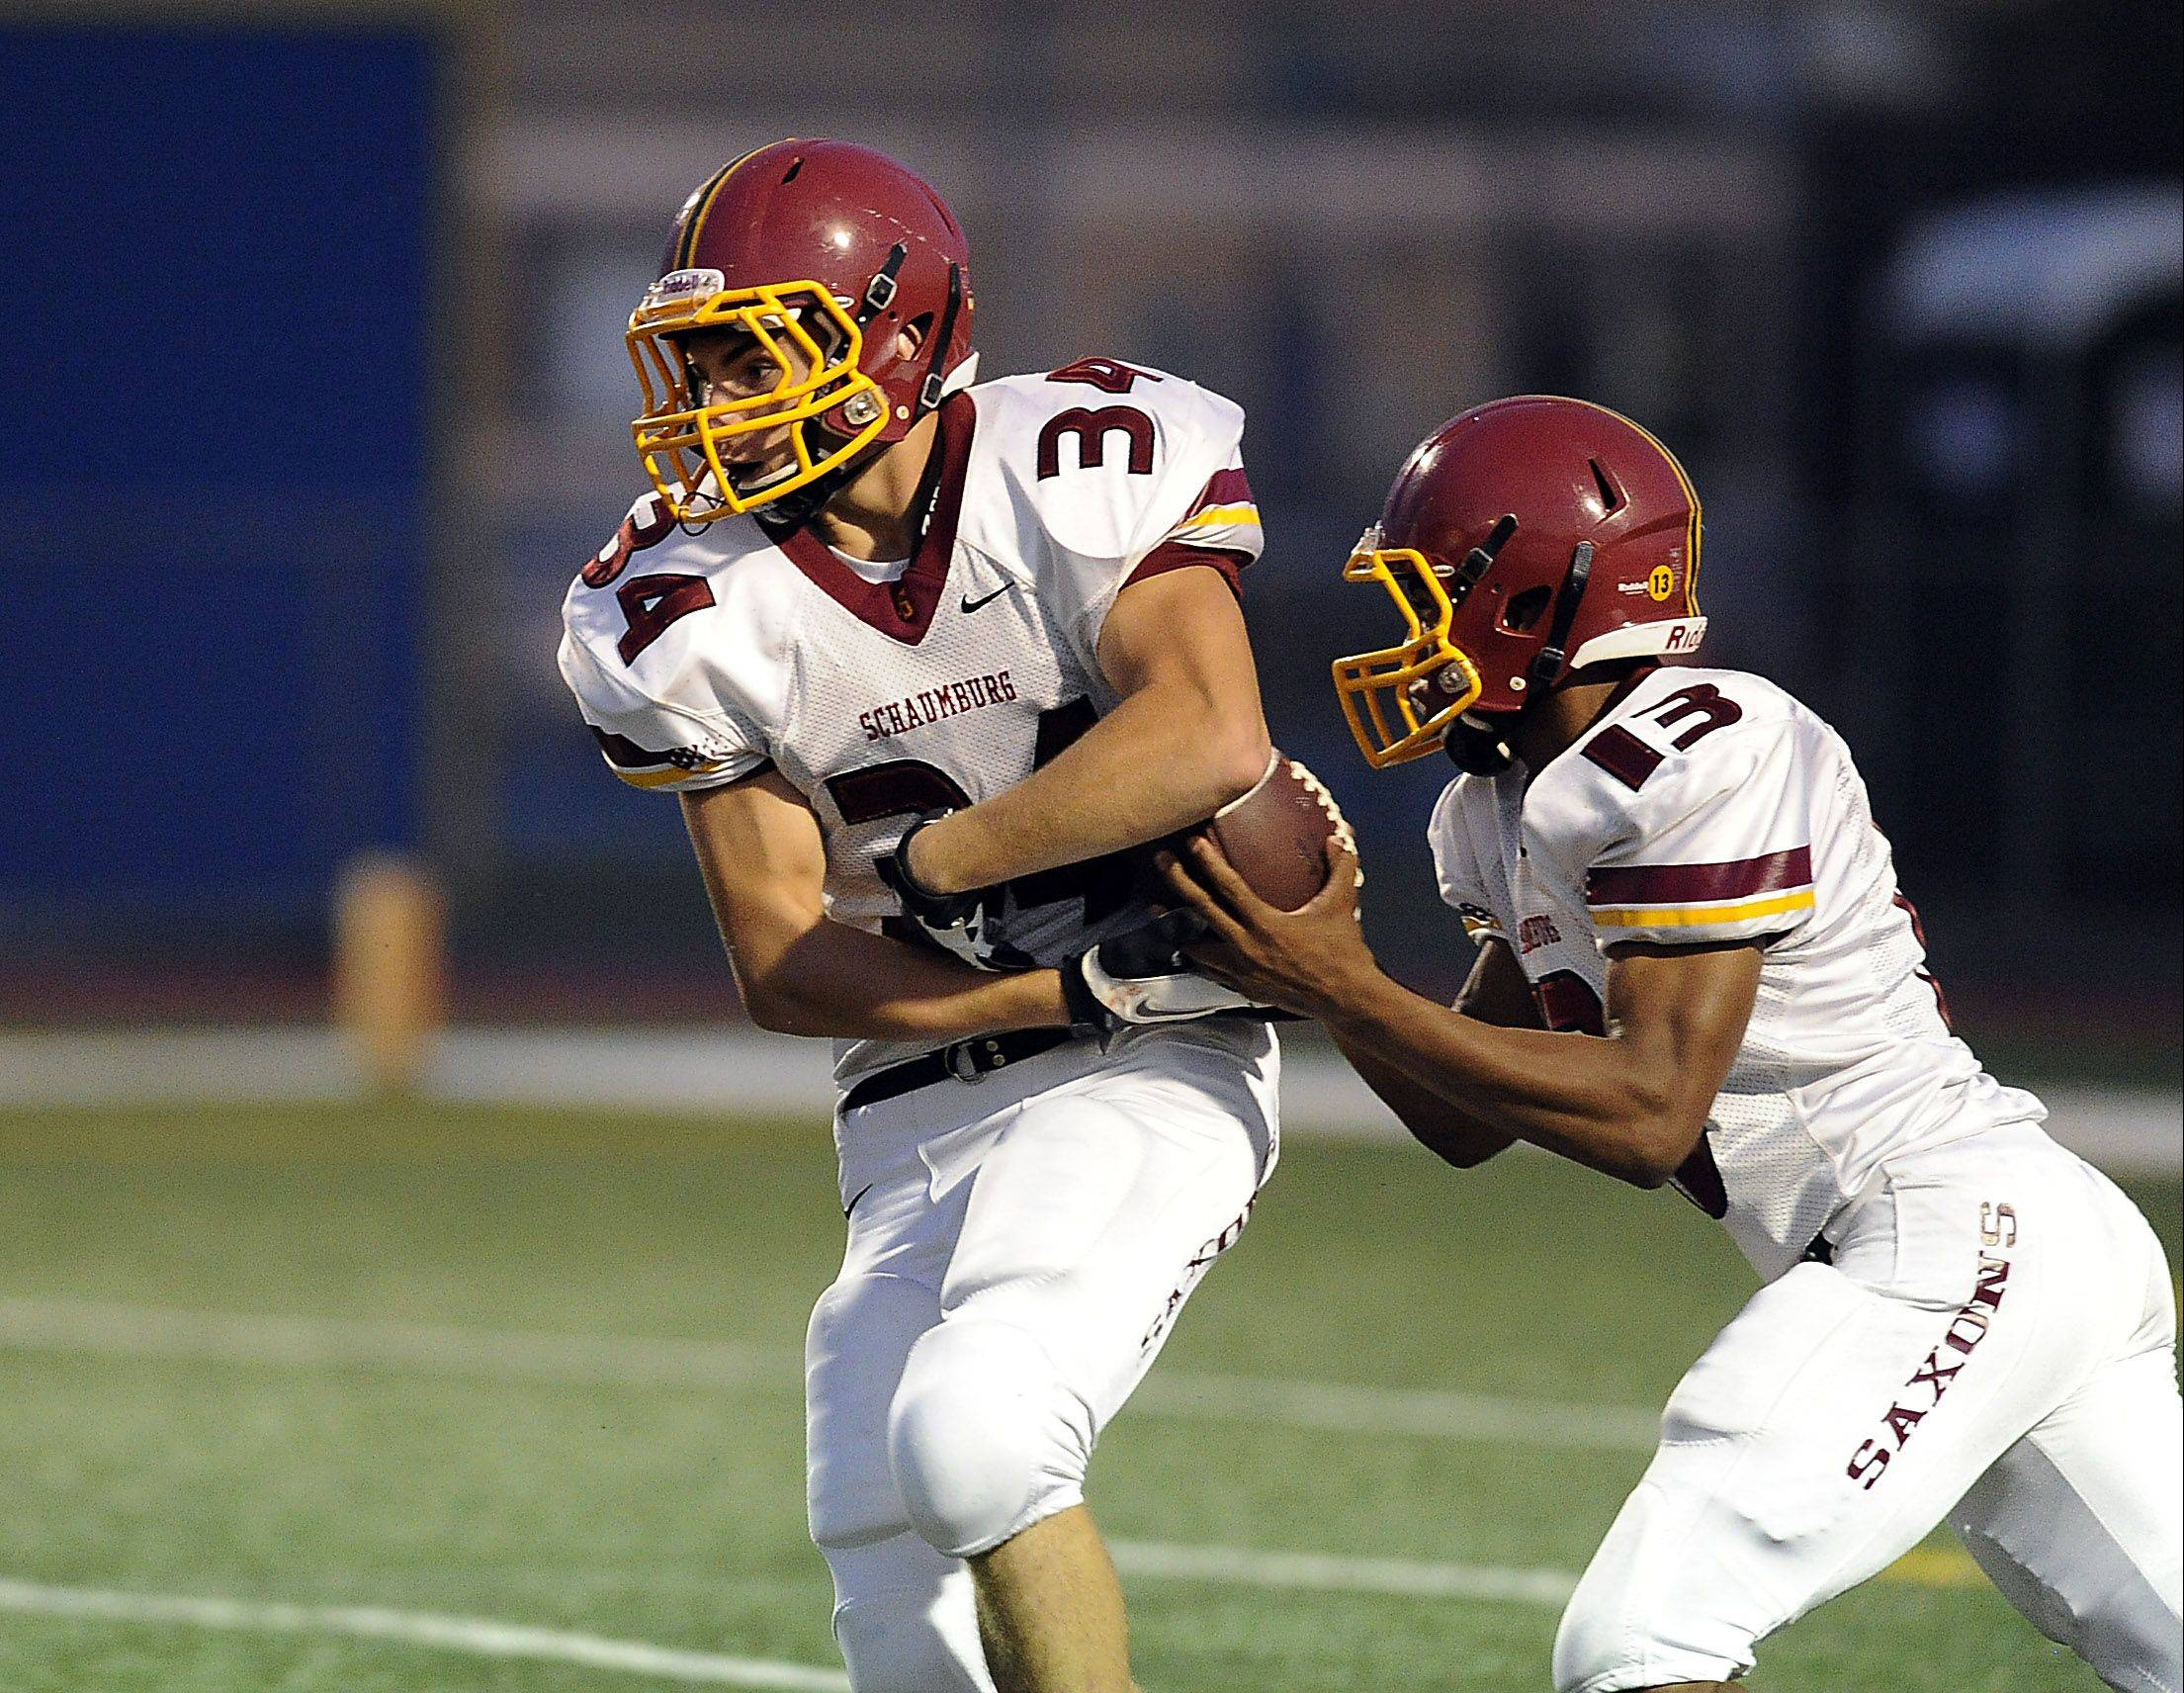 Schaumburg quarterback Stacey Smith fakes a handoff to Michael Jones before going for a touchdown Friday night at Wheeling.